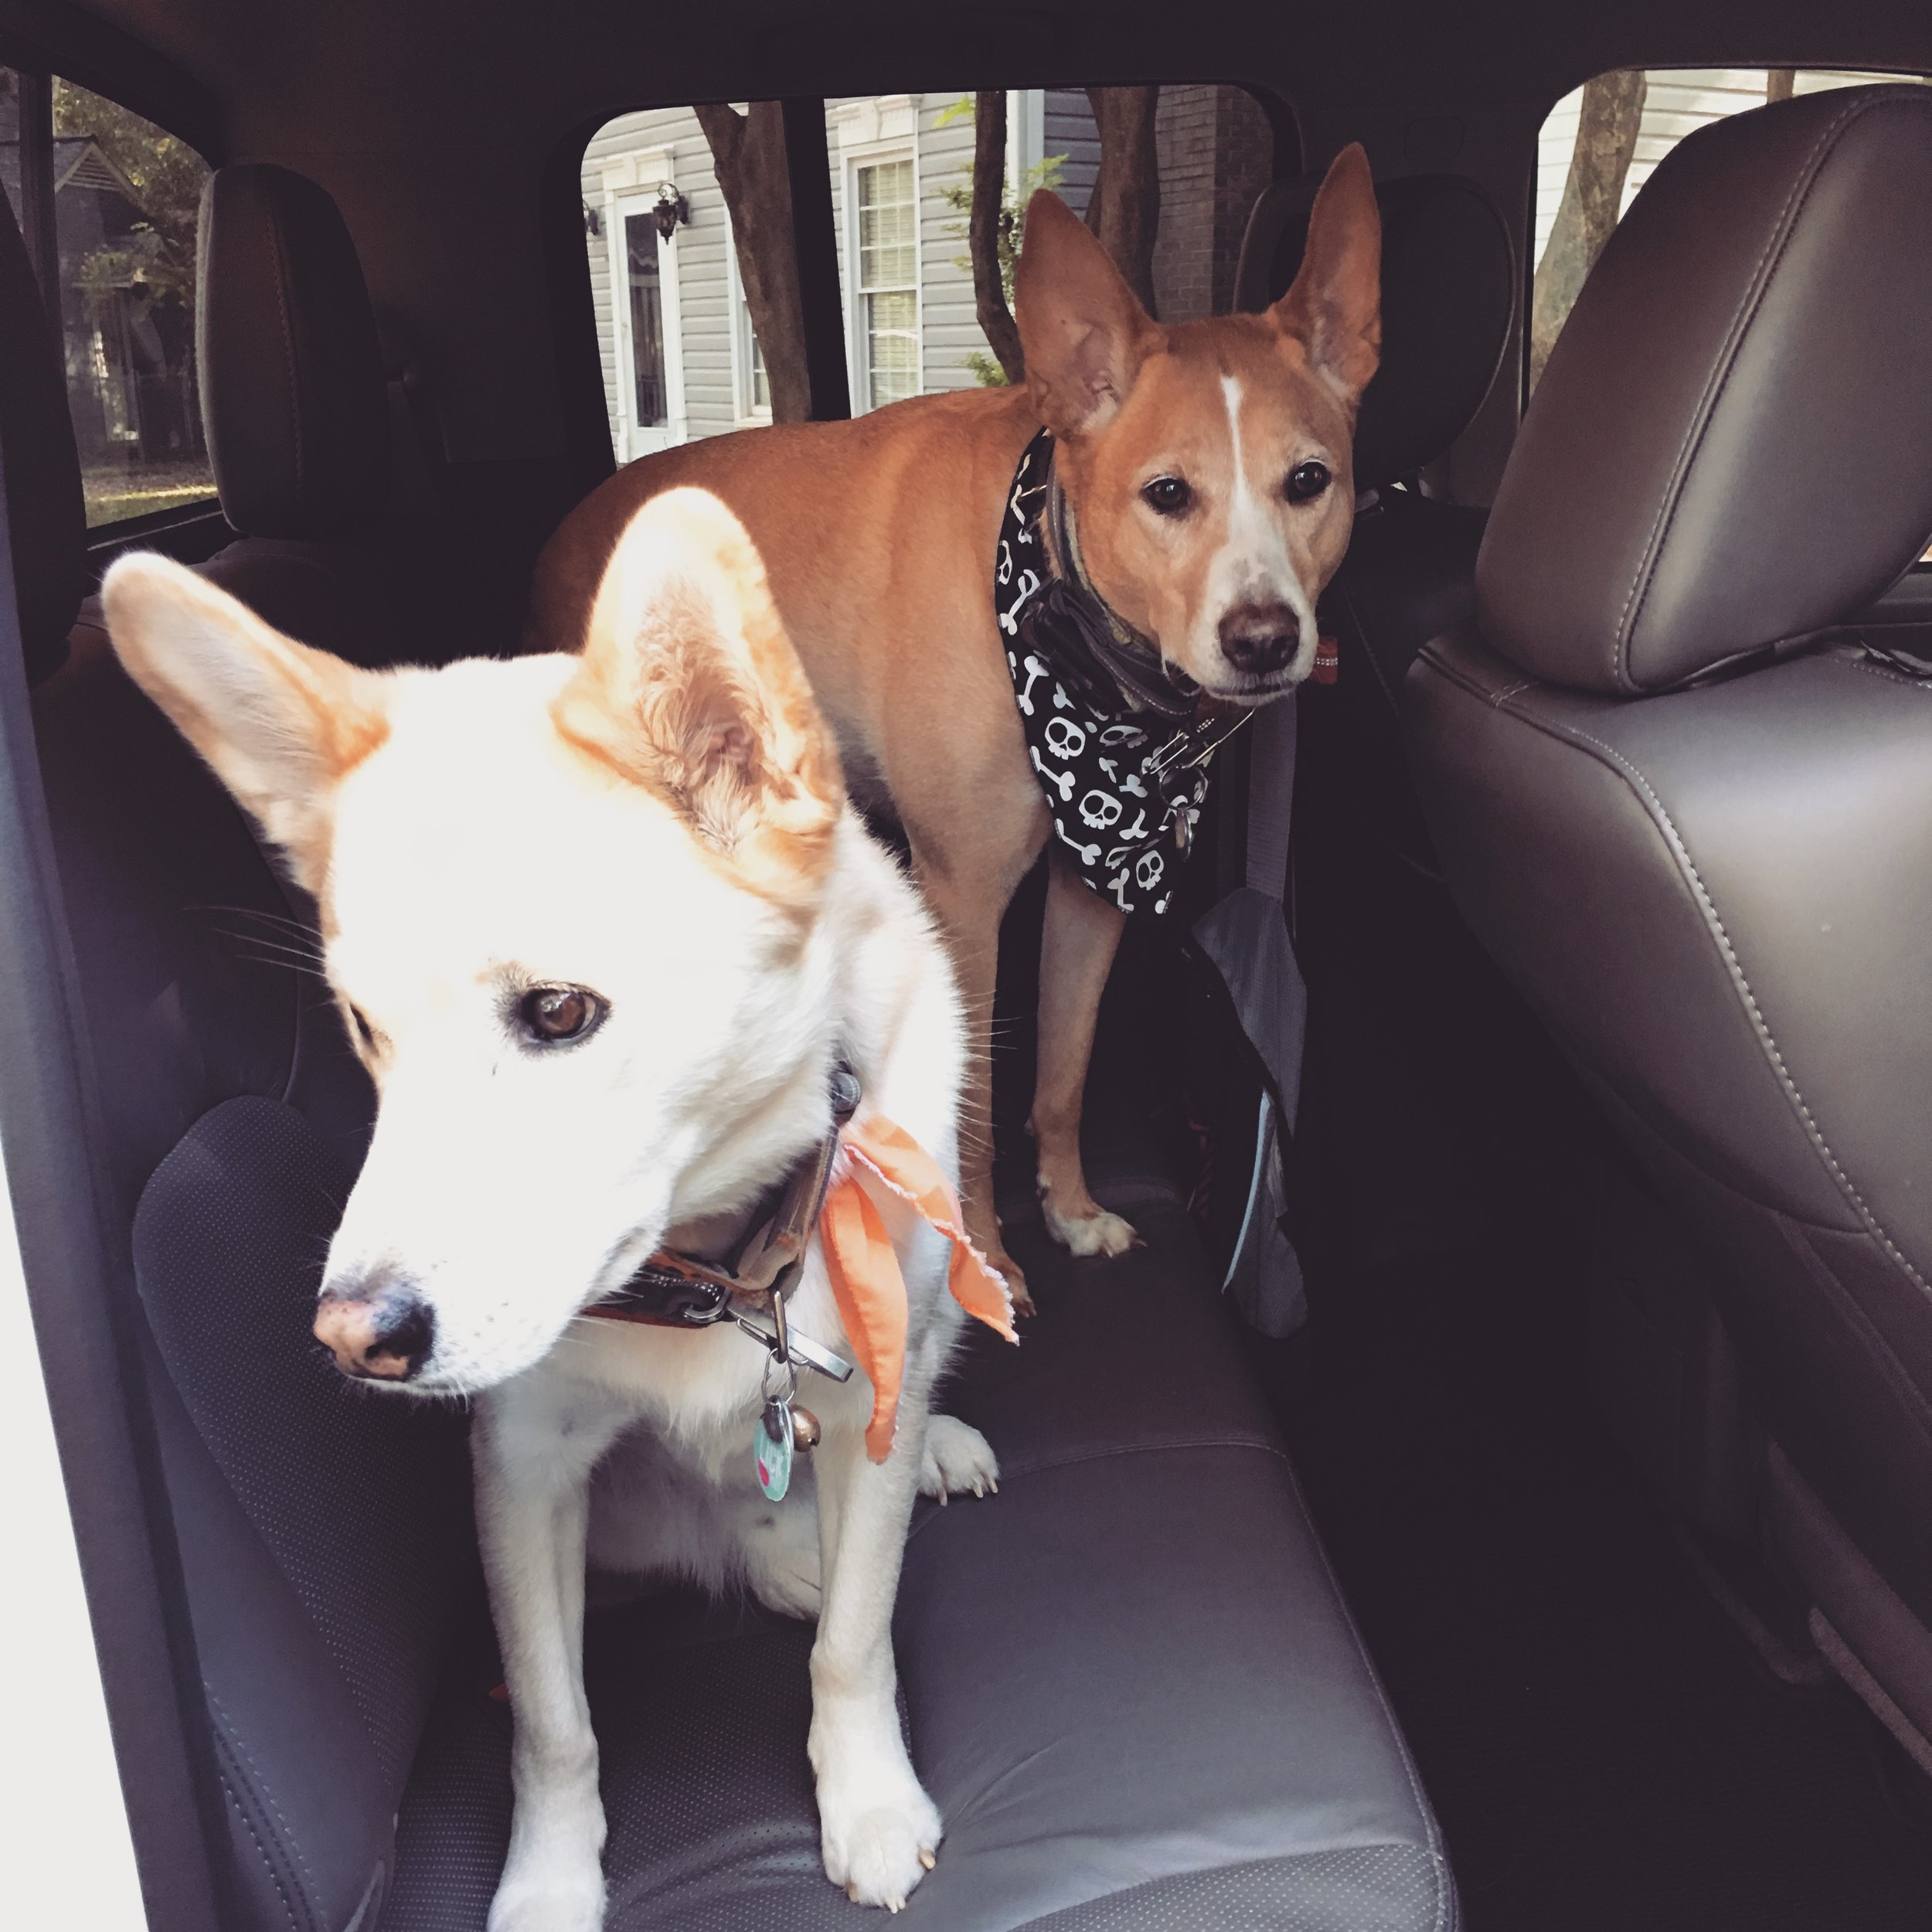 We might have hopped in the truck way before our people were ready to leave, but we waited patiently. :)